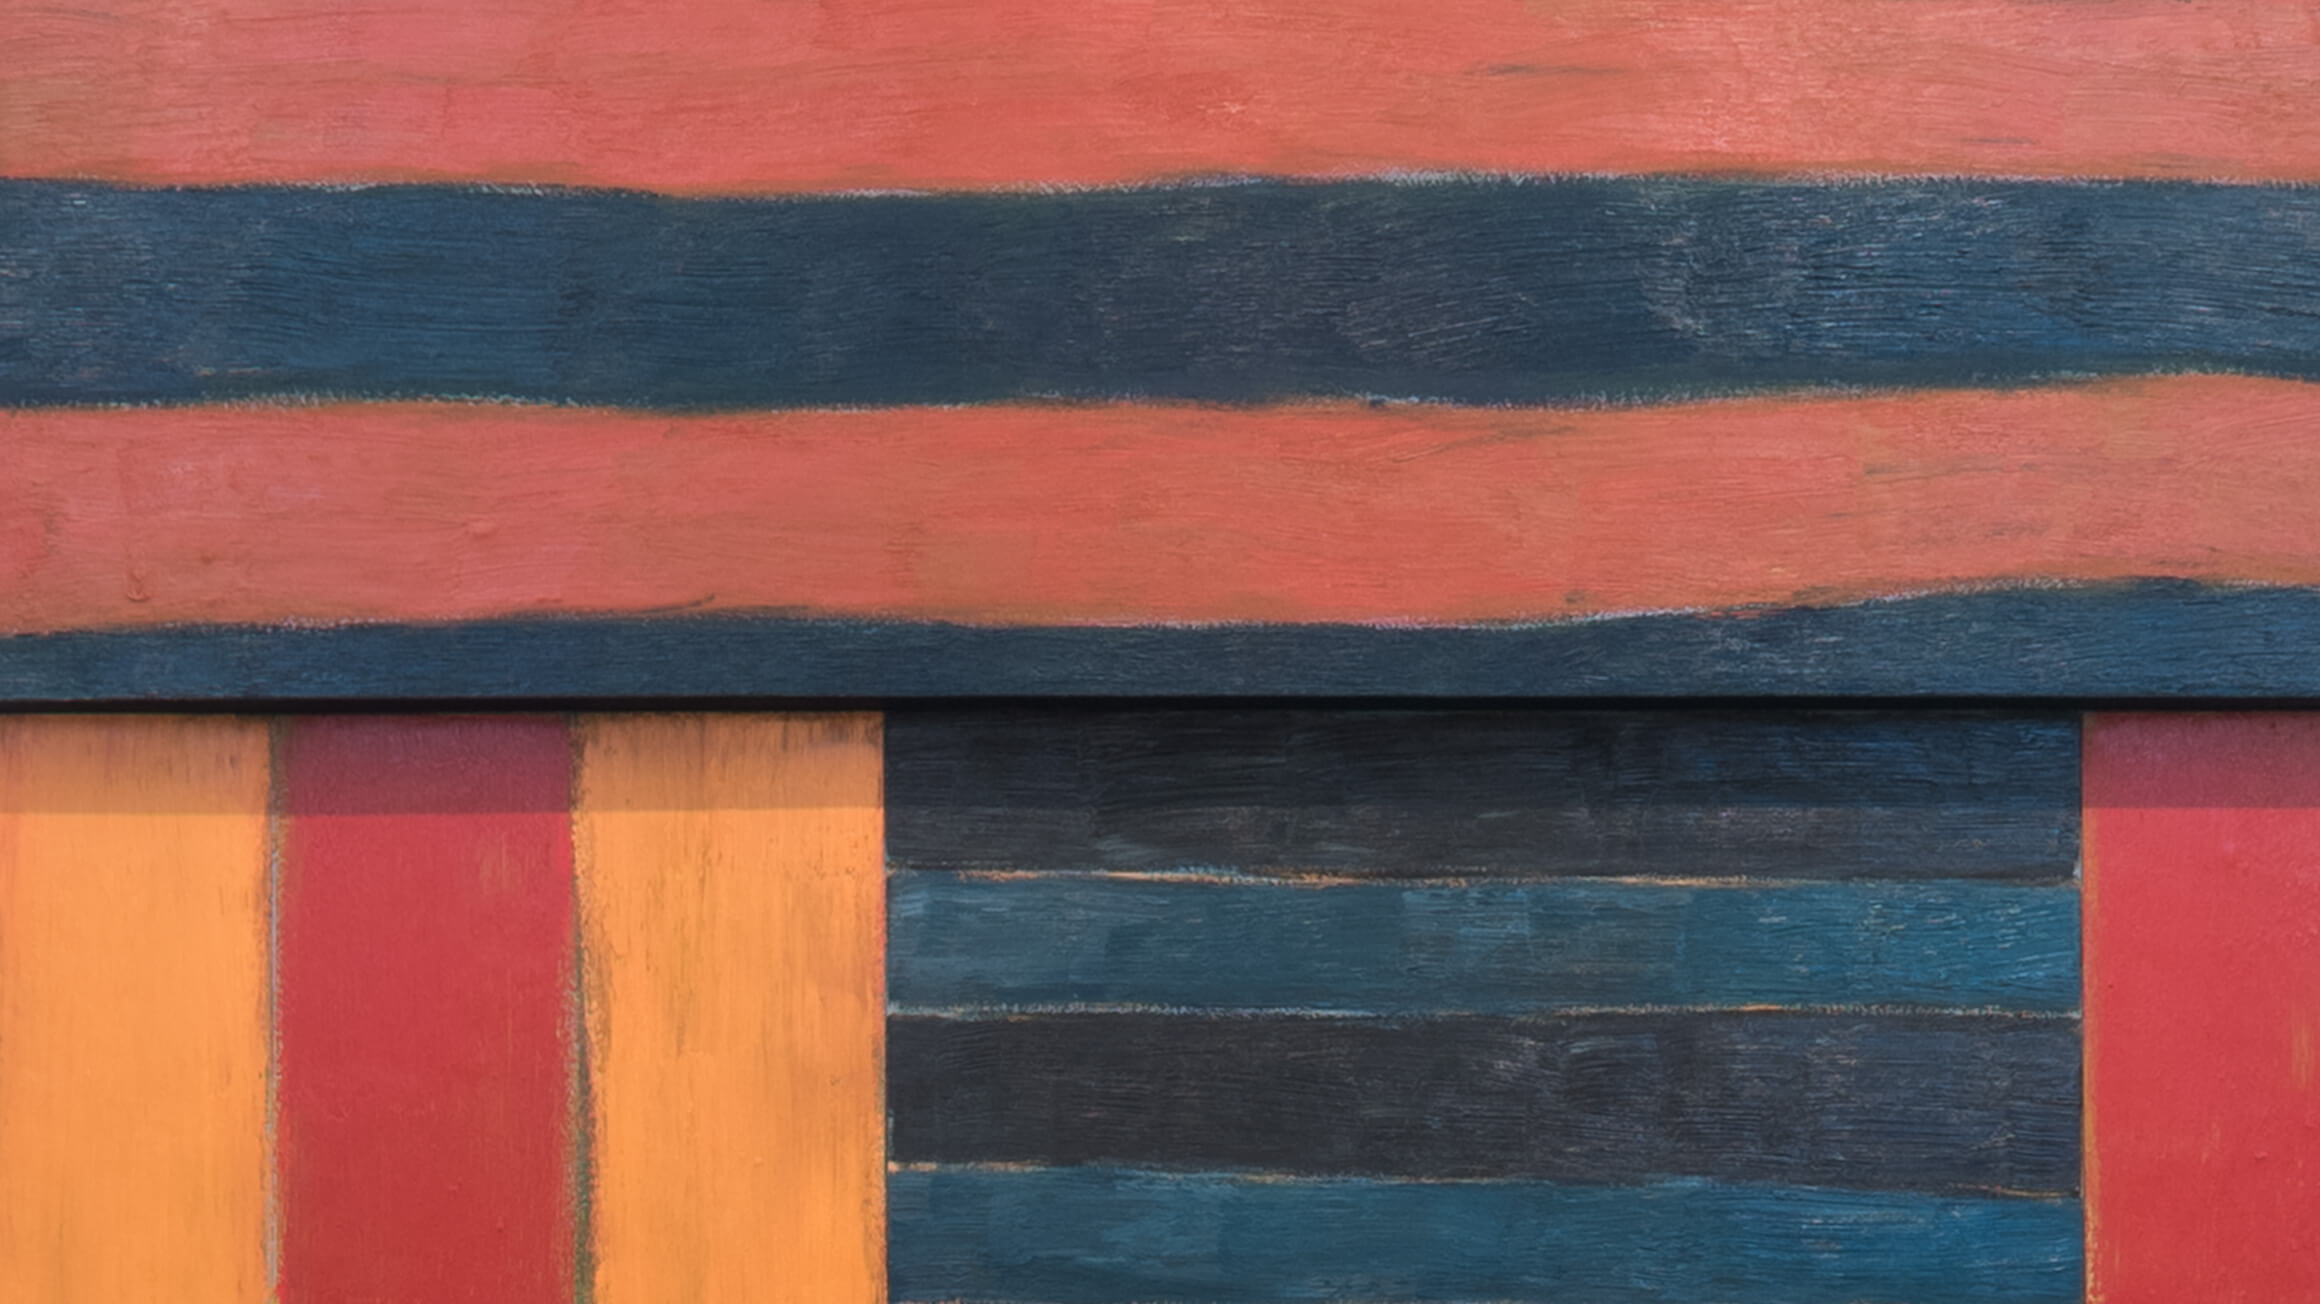 The Fall (detail), 1983, by Sean Scully (American, born Ireland 1945), 2017-208-1. © Sean Scully